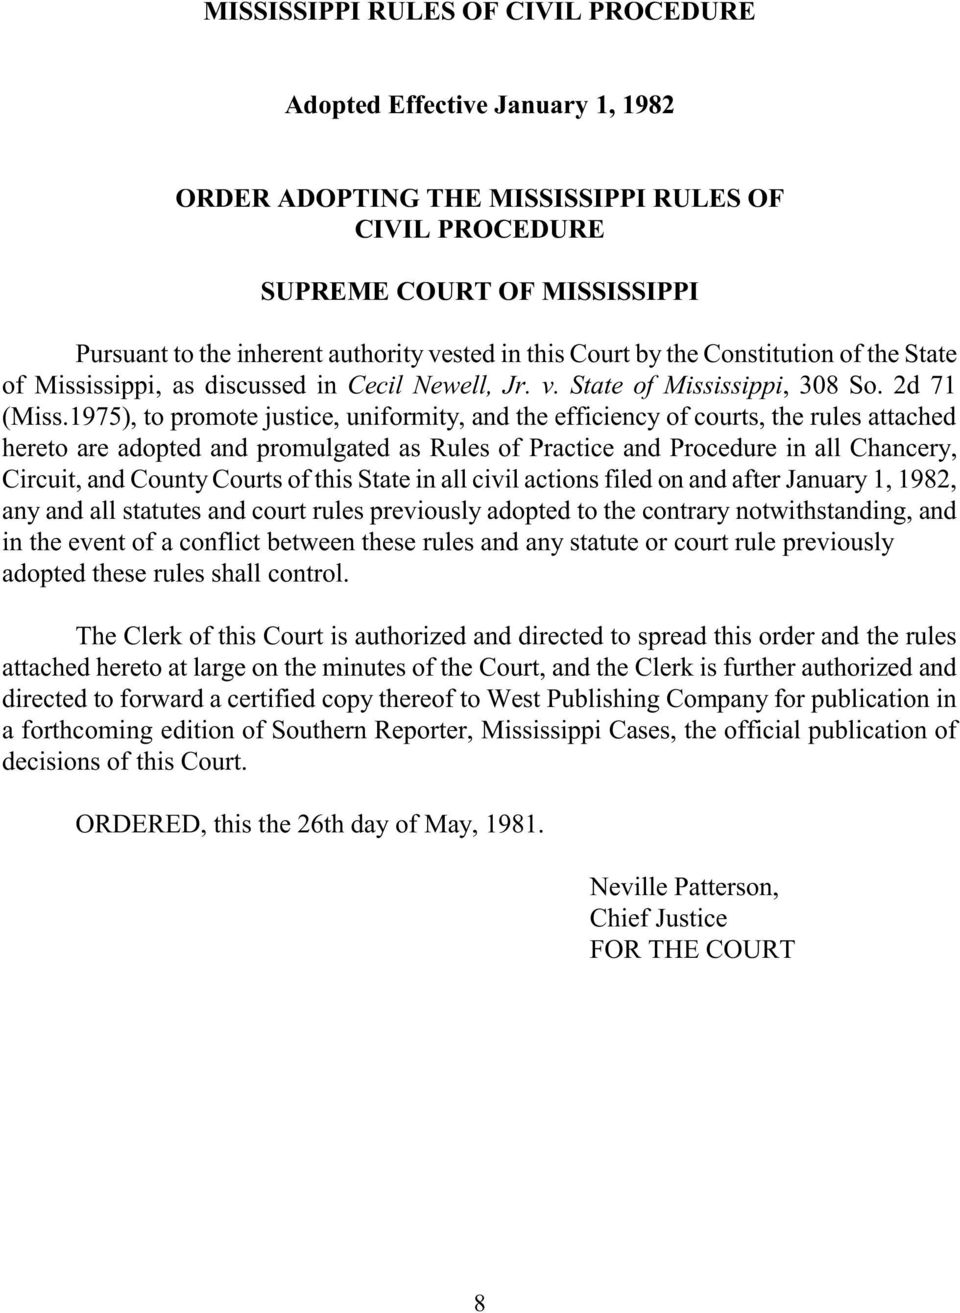 1975), to promote justice, uniformity, and the efficiency of courts, the rules attached hereto are adopted and promulgated as Rules of Practice and Procedure in all Chancery, Circuit, and County